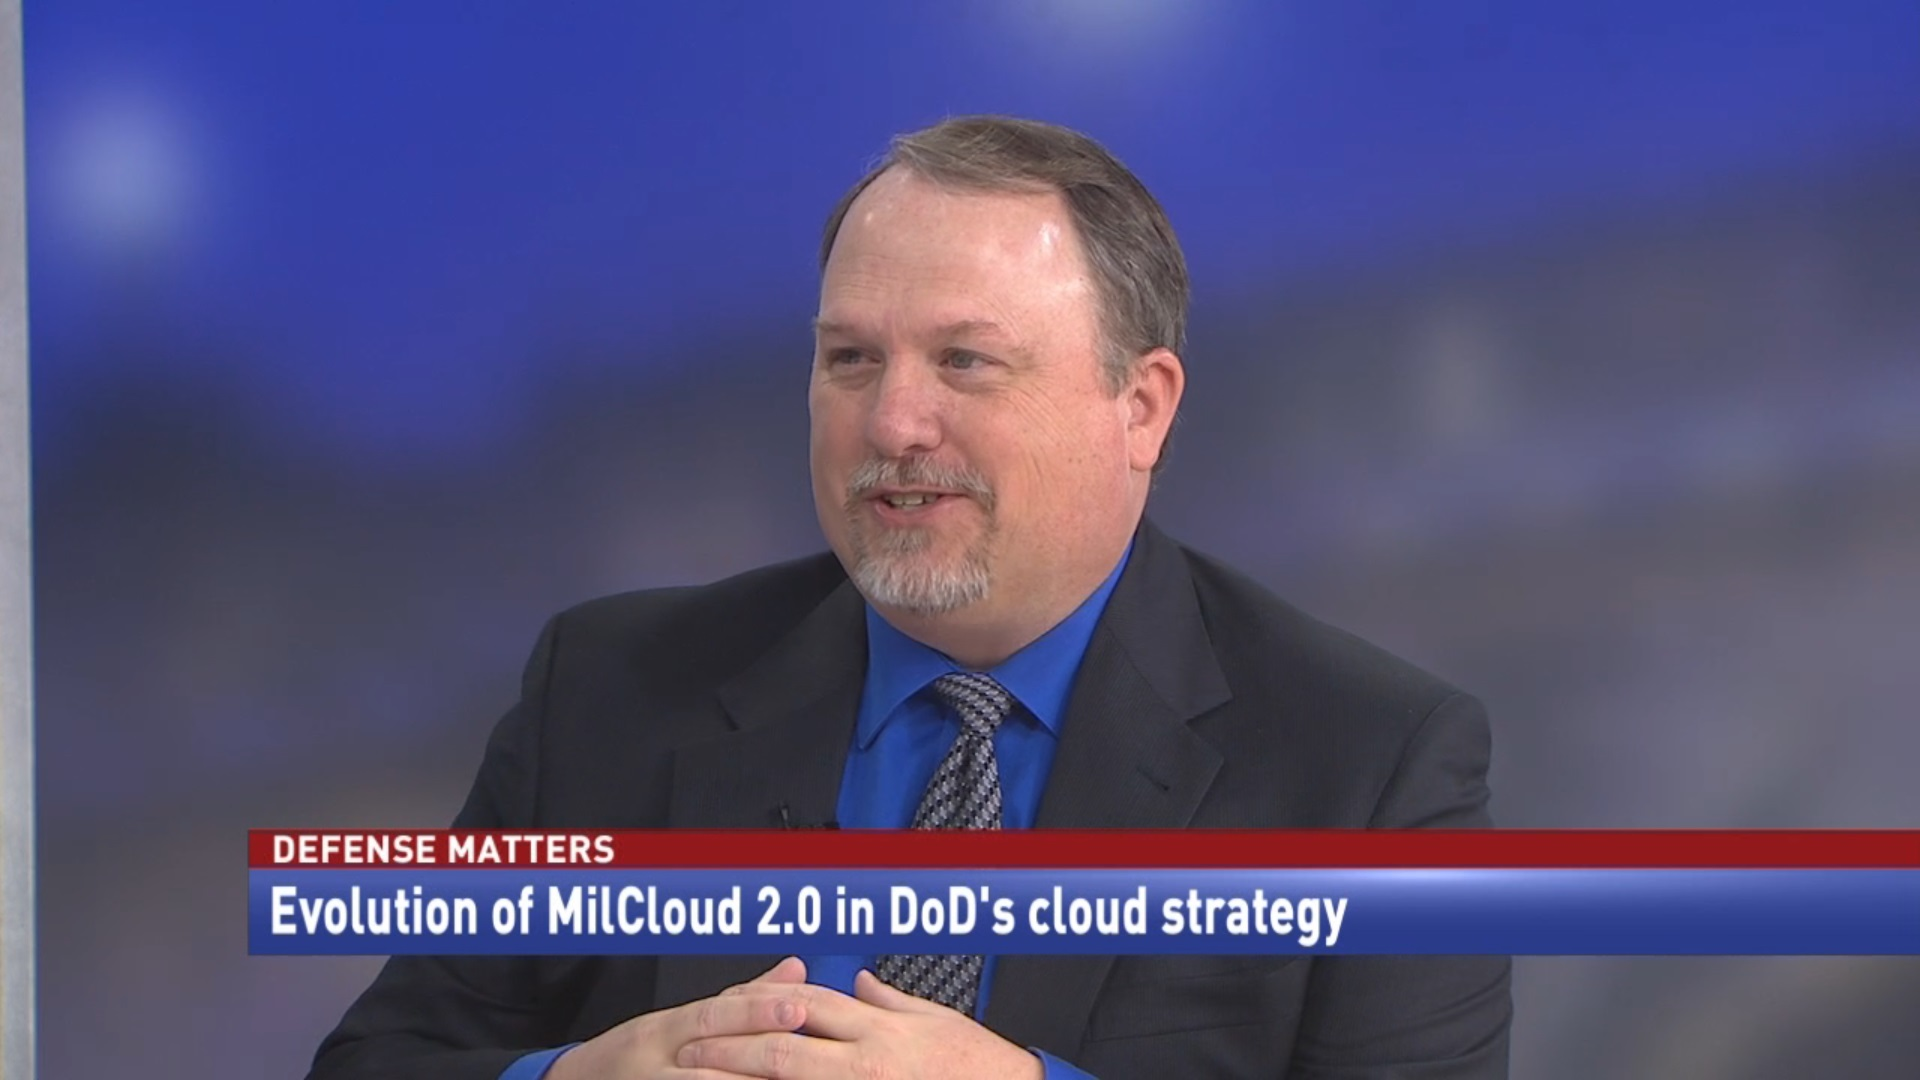 Evolution of MilCloud 2.0 in DoD's cloud strategy